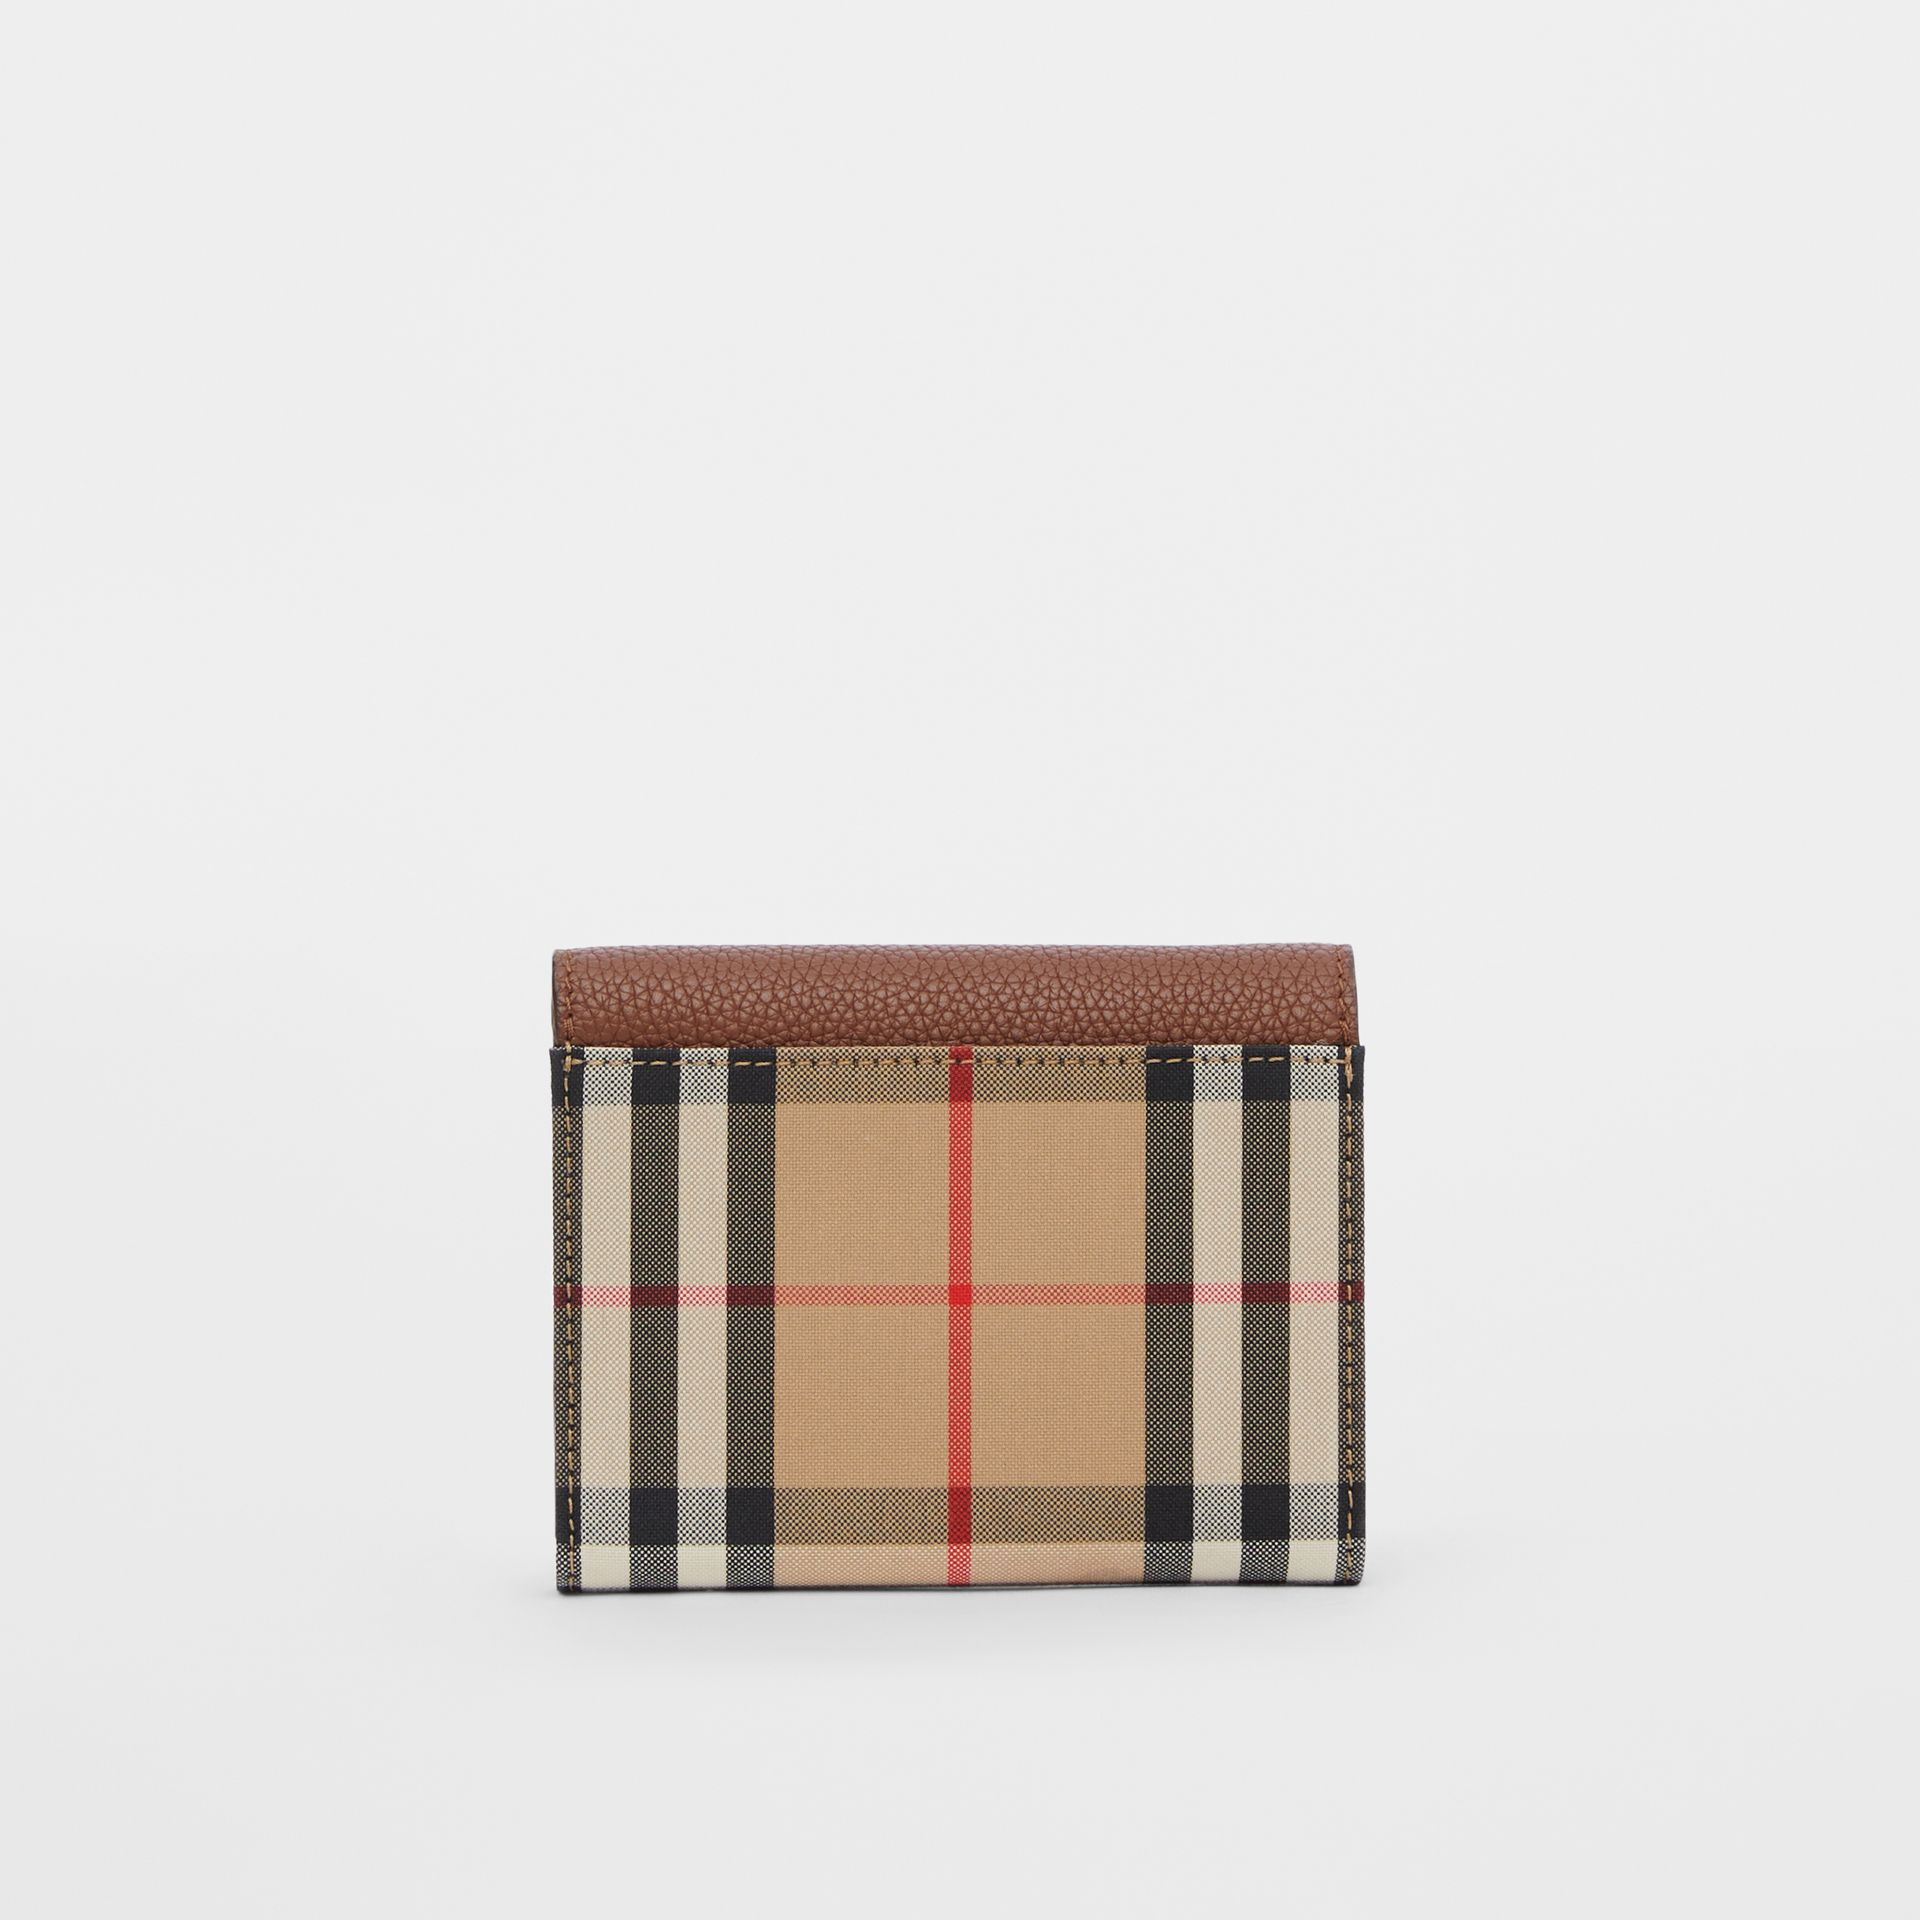 Small Vintage Check and Leather Folding Wallet in Tan - Women | Burberry - gallery image 4